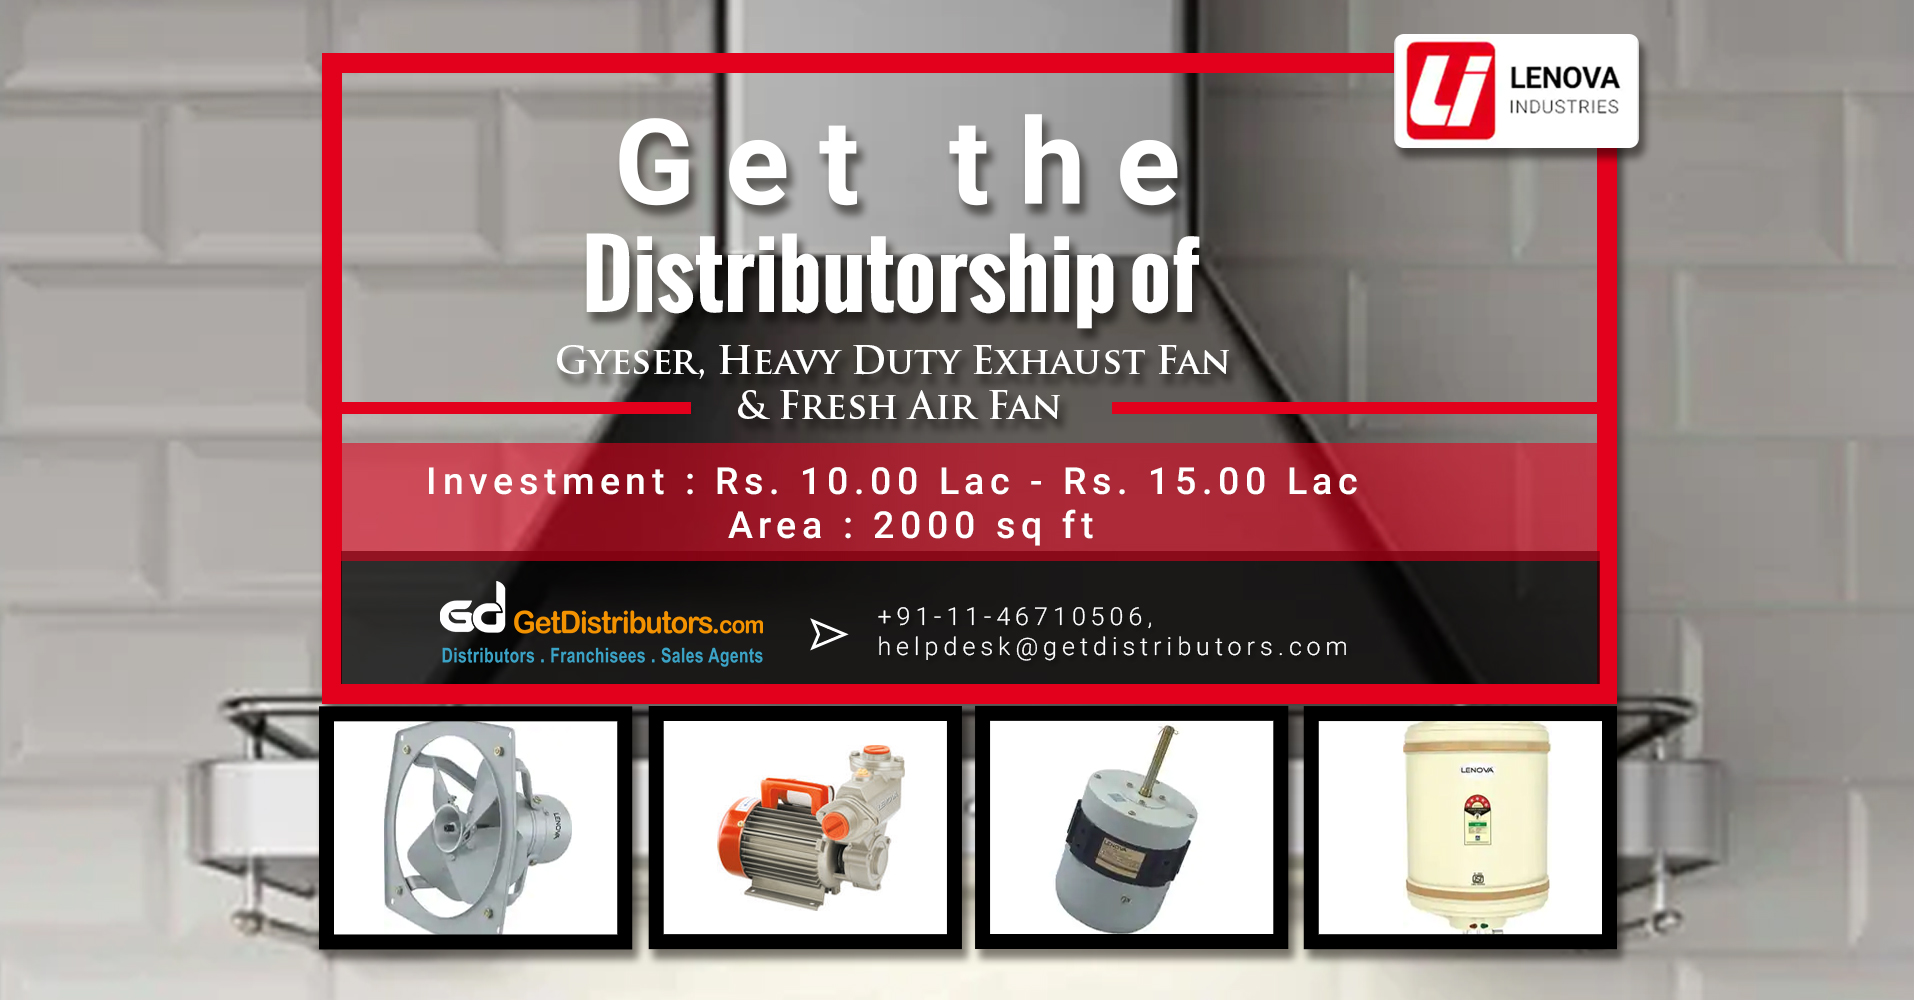 Good Quality And Trusted Electrical Appliances Distributorship By Lenova Industries